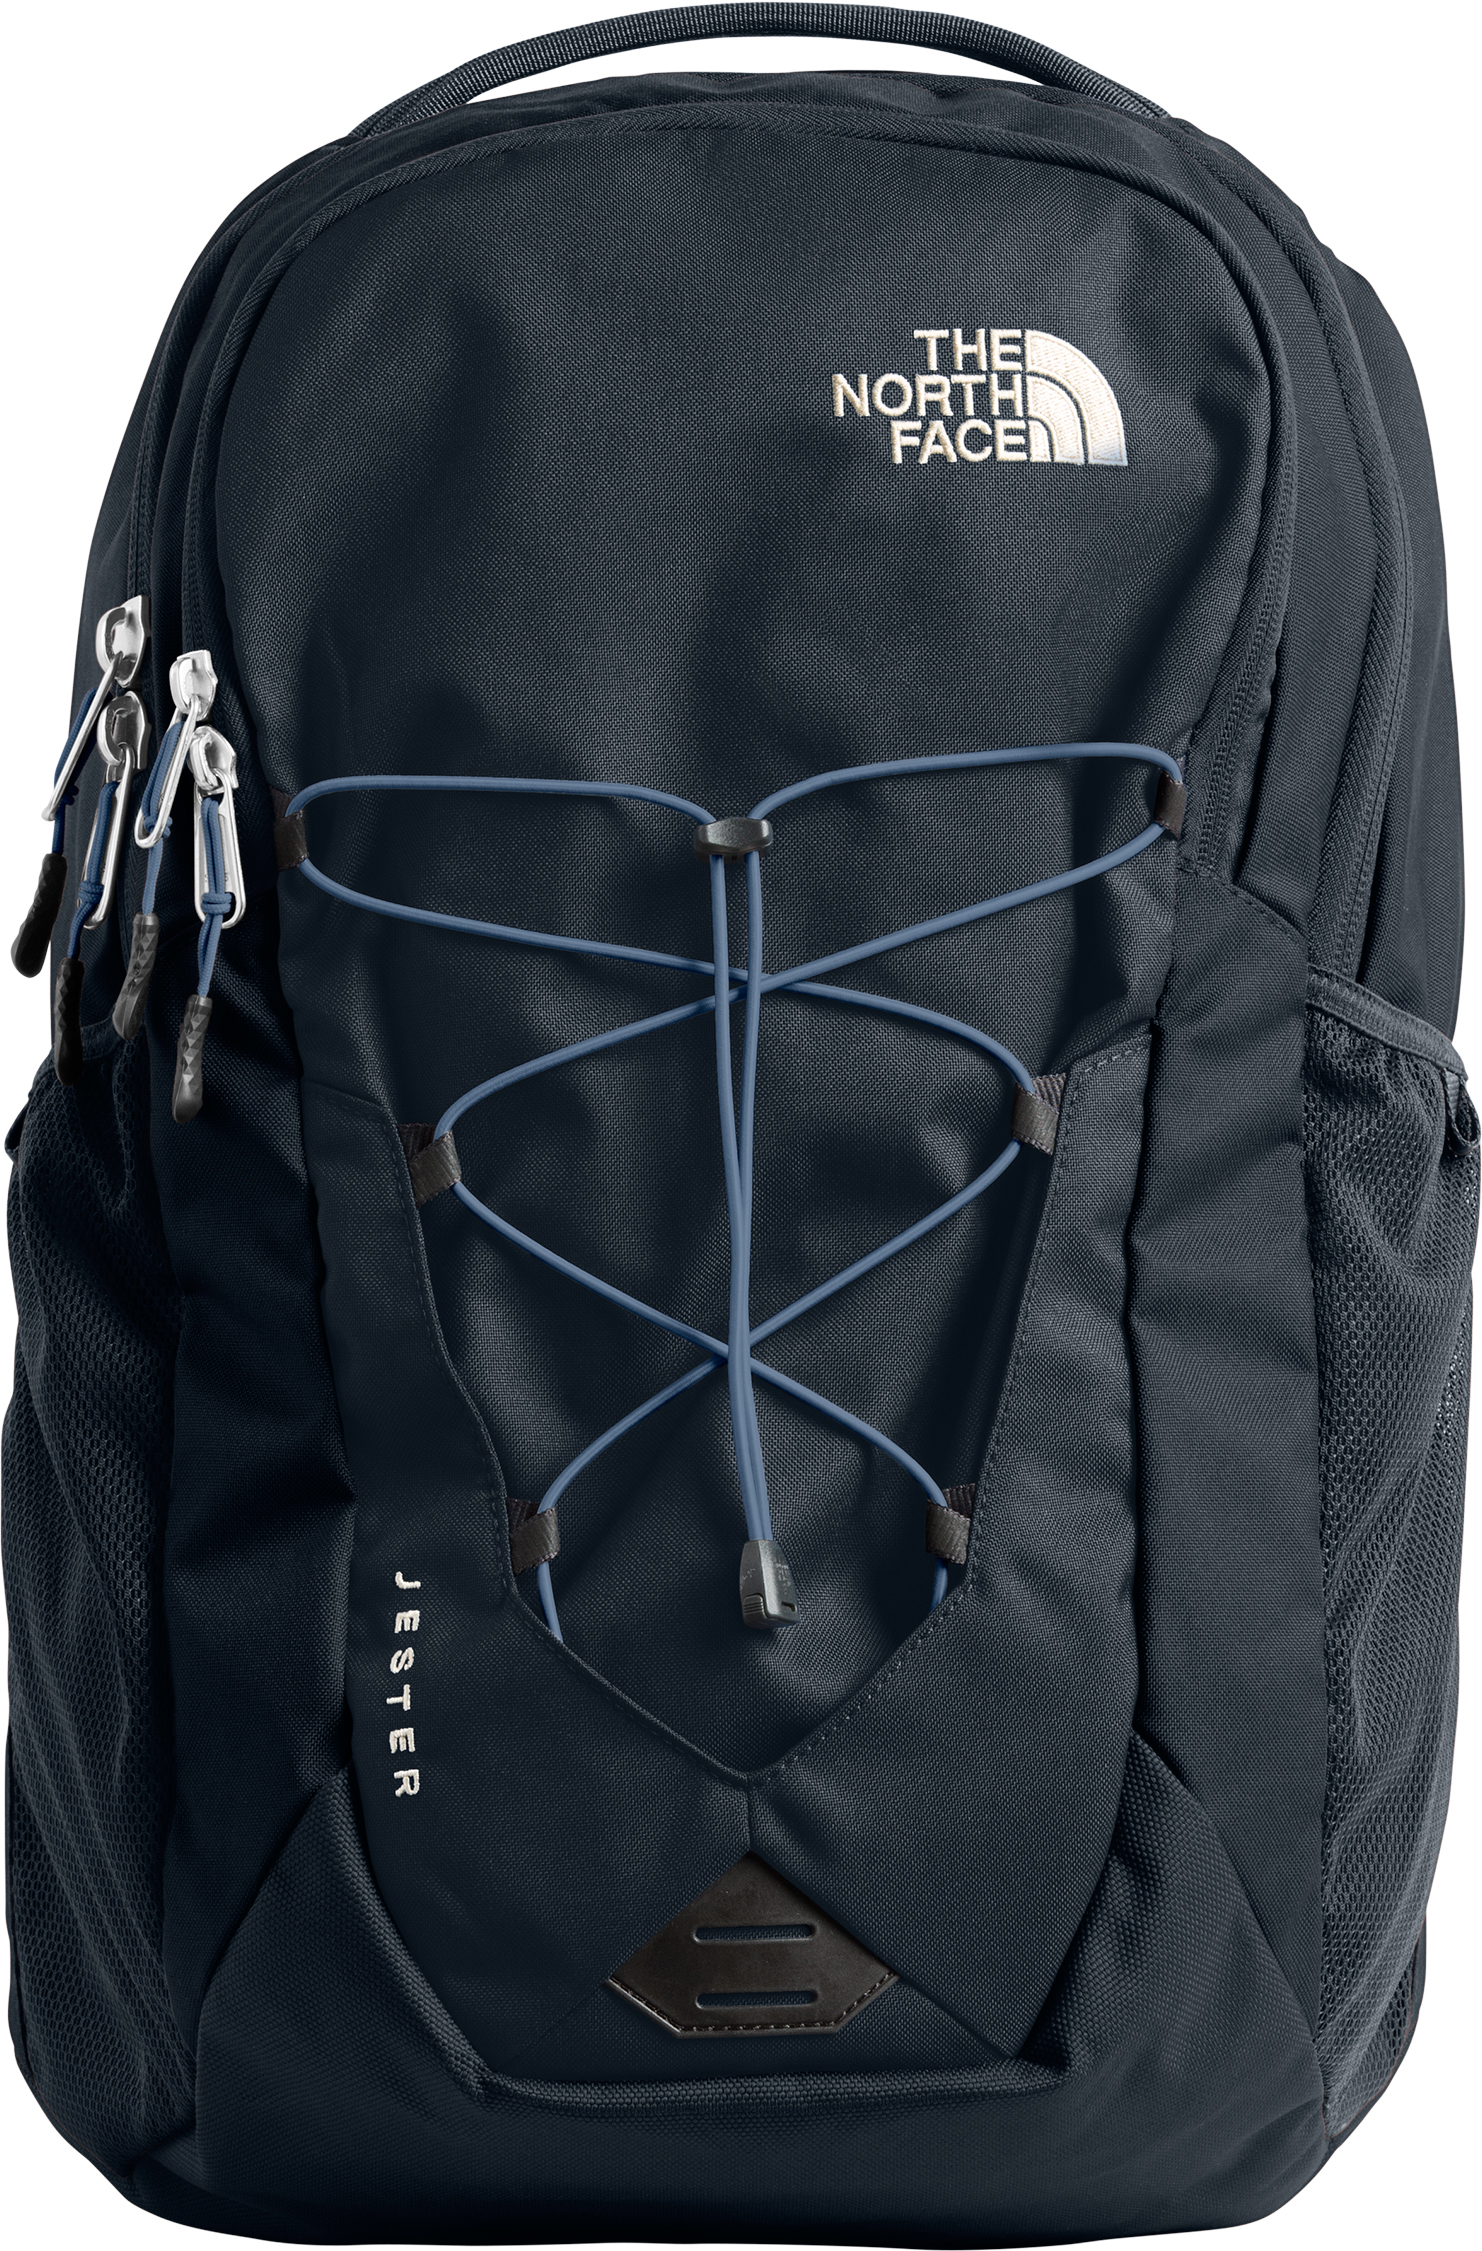 ecf1b37e6 The North Face Jester Daypack - Unisex